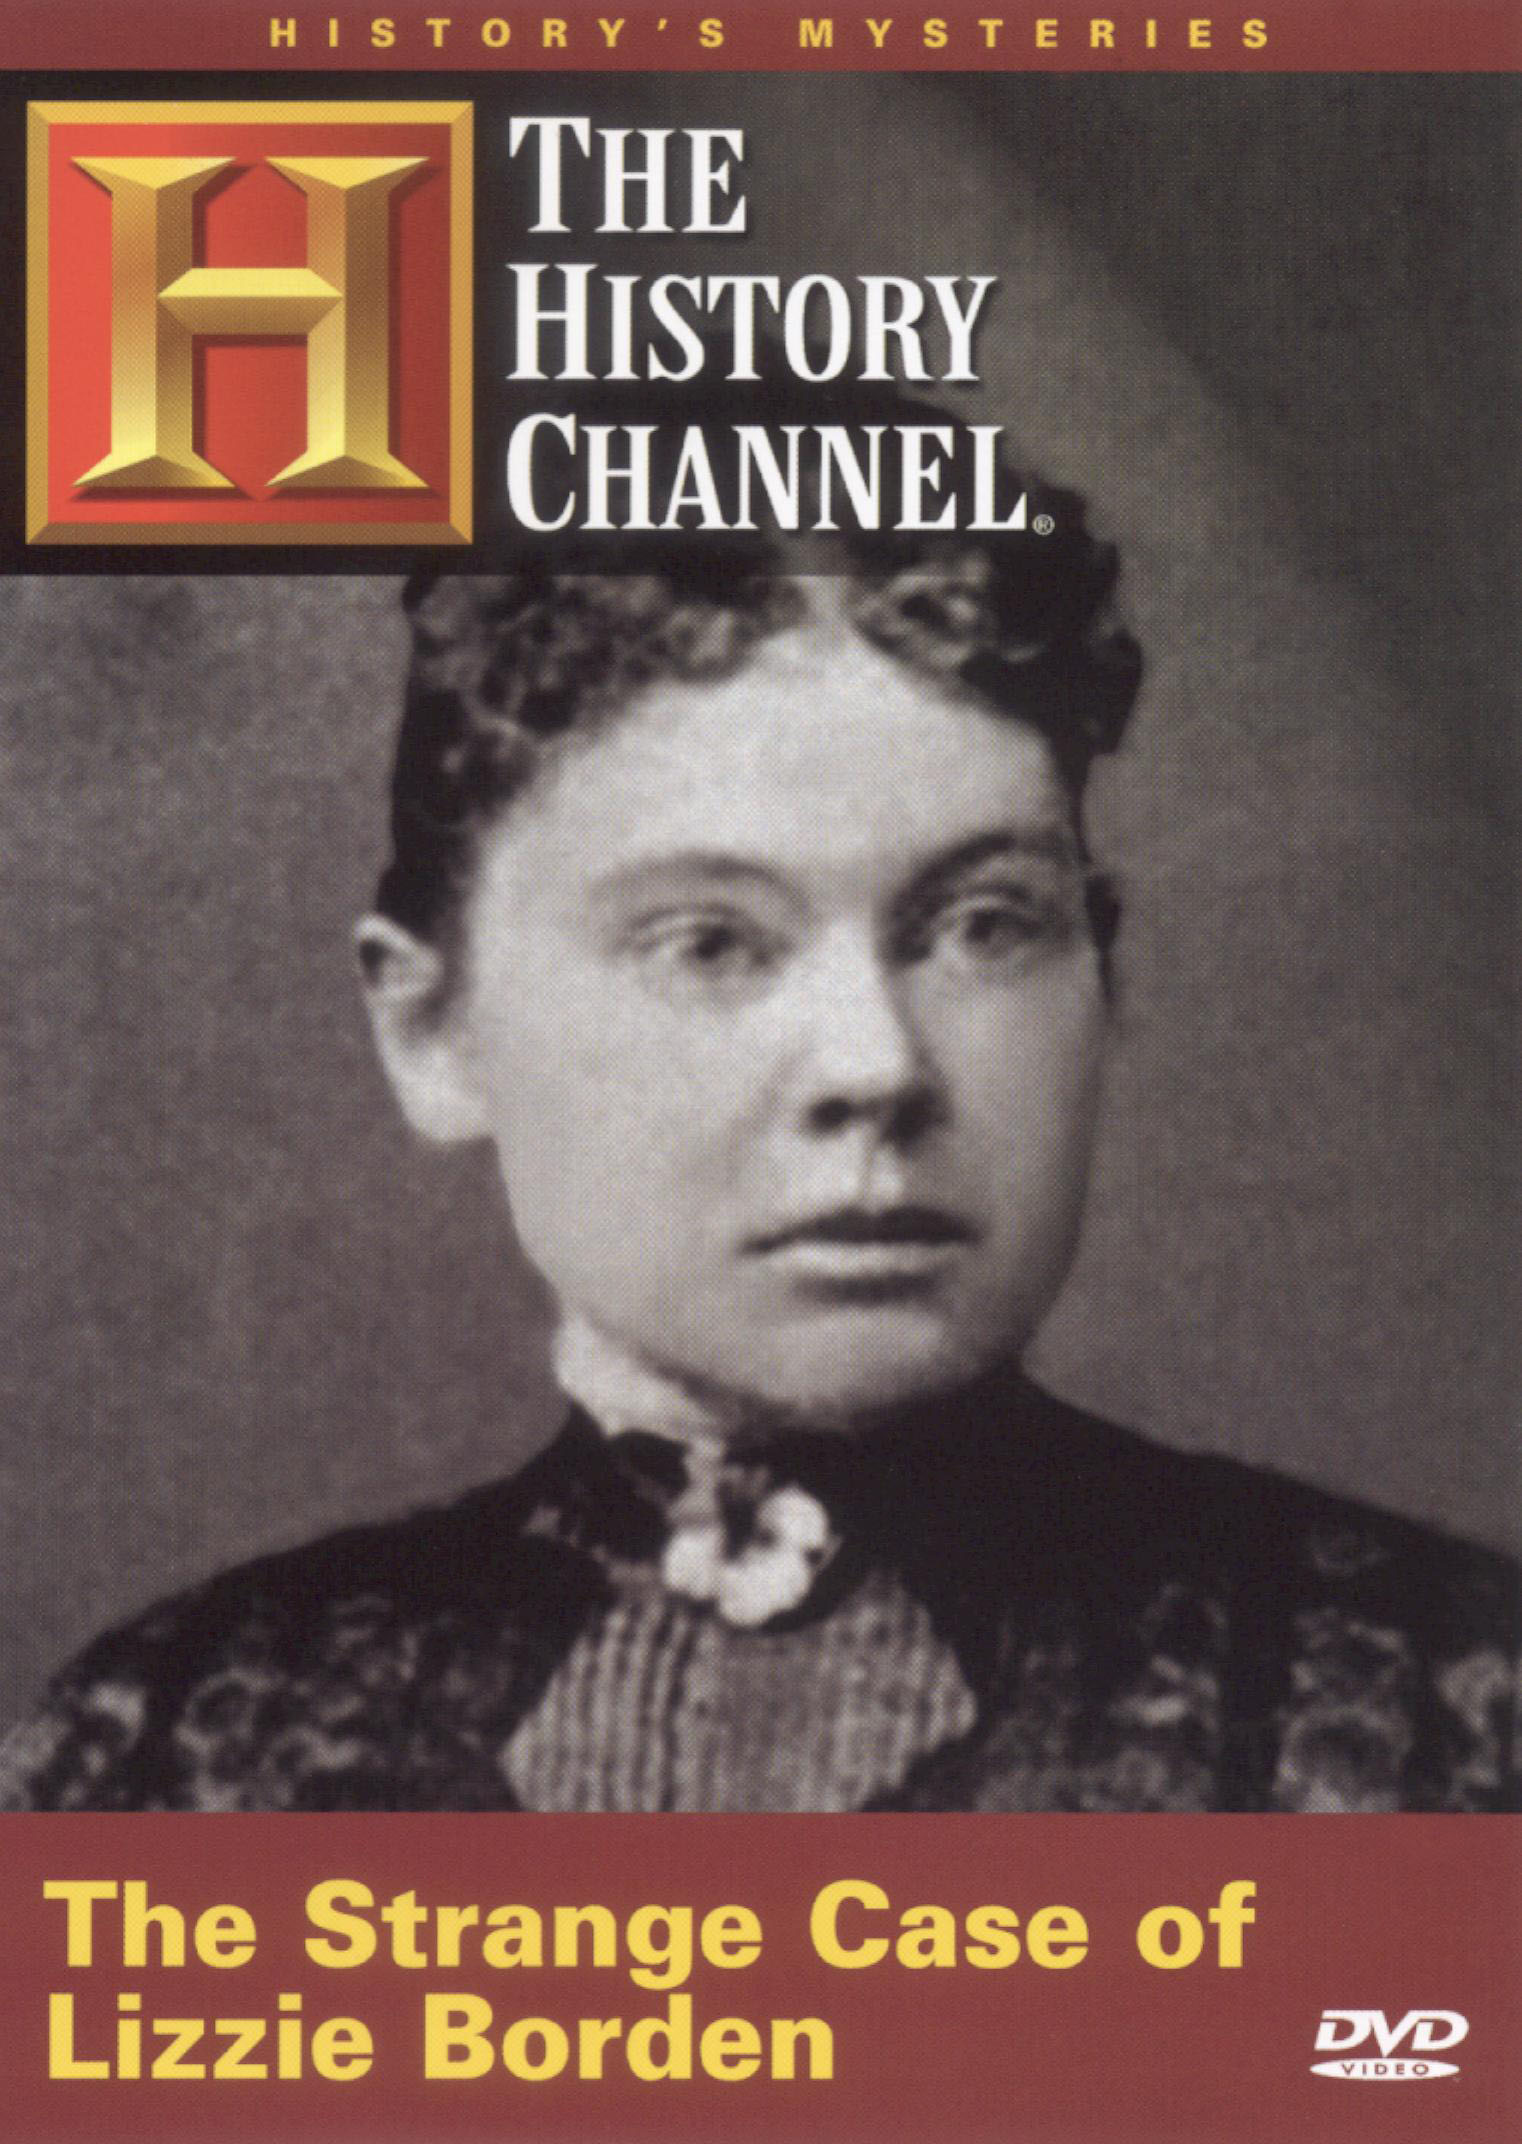 historys mysteries the strange case of lizzie borden